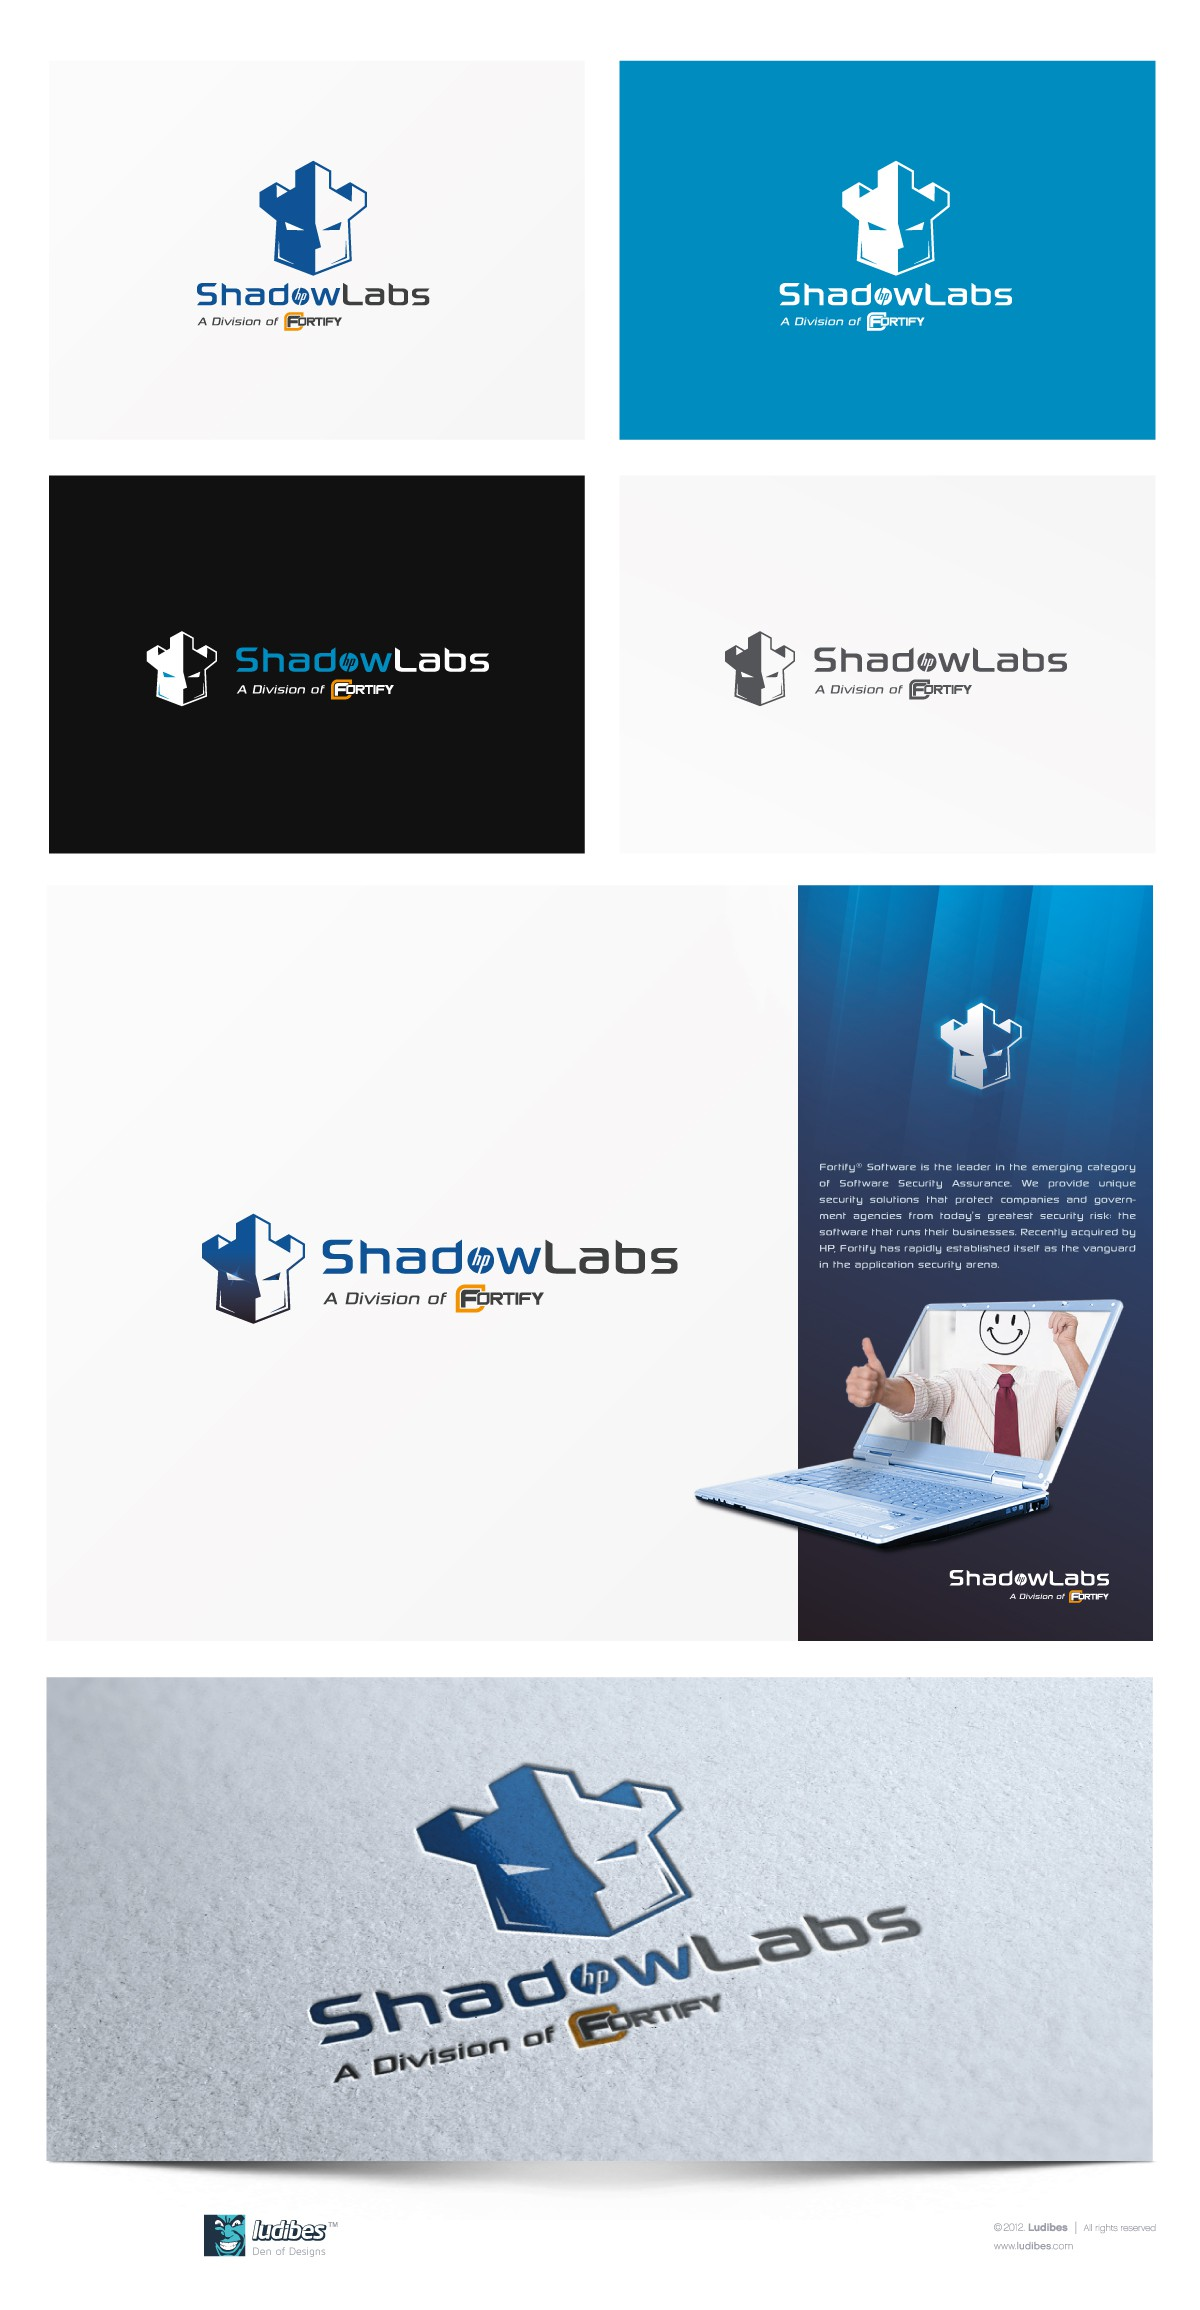 [Logo] HP Fortify ShadowLabs , HP's Security and Hacking Consultancy